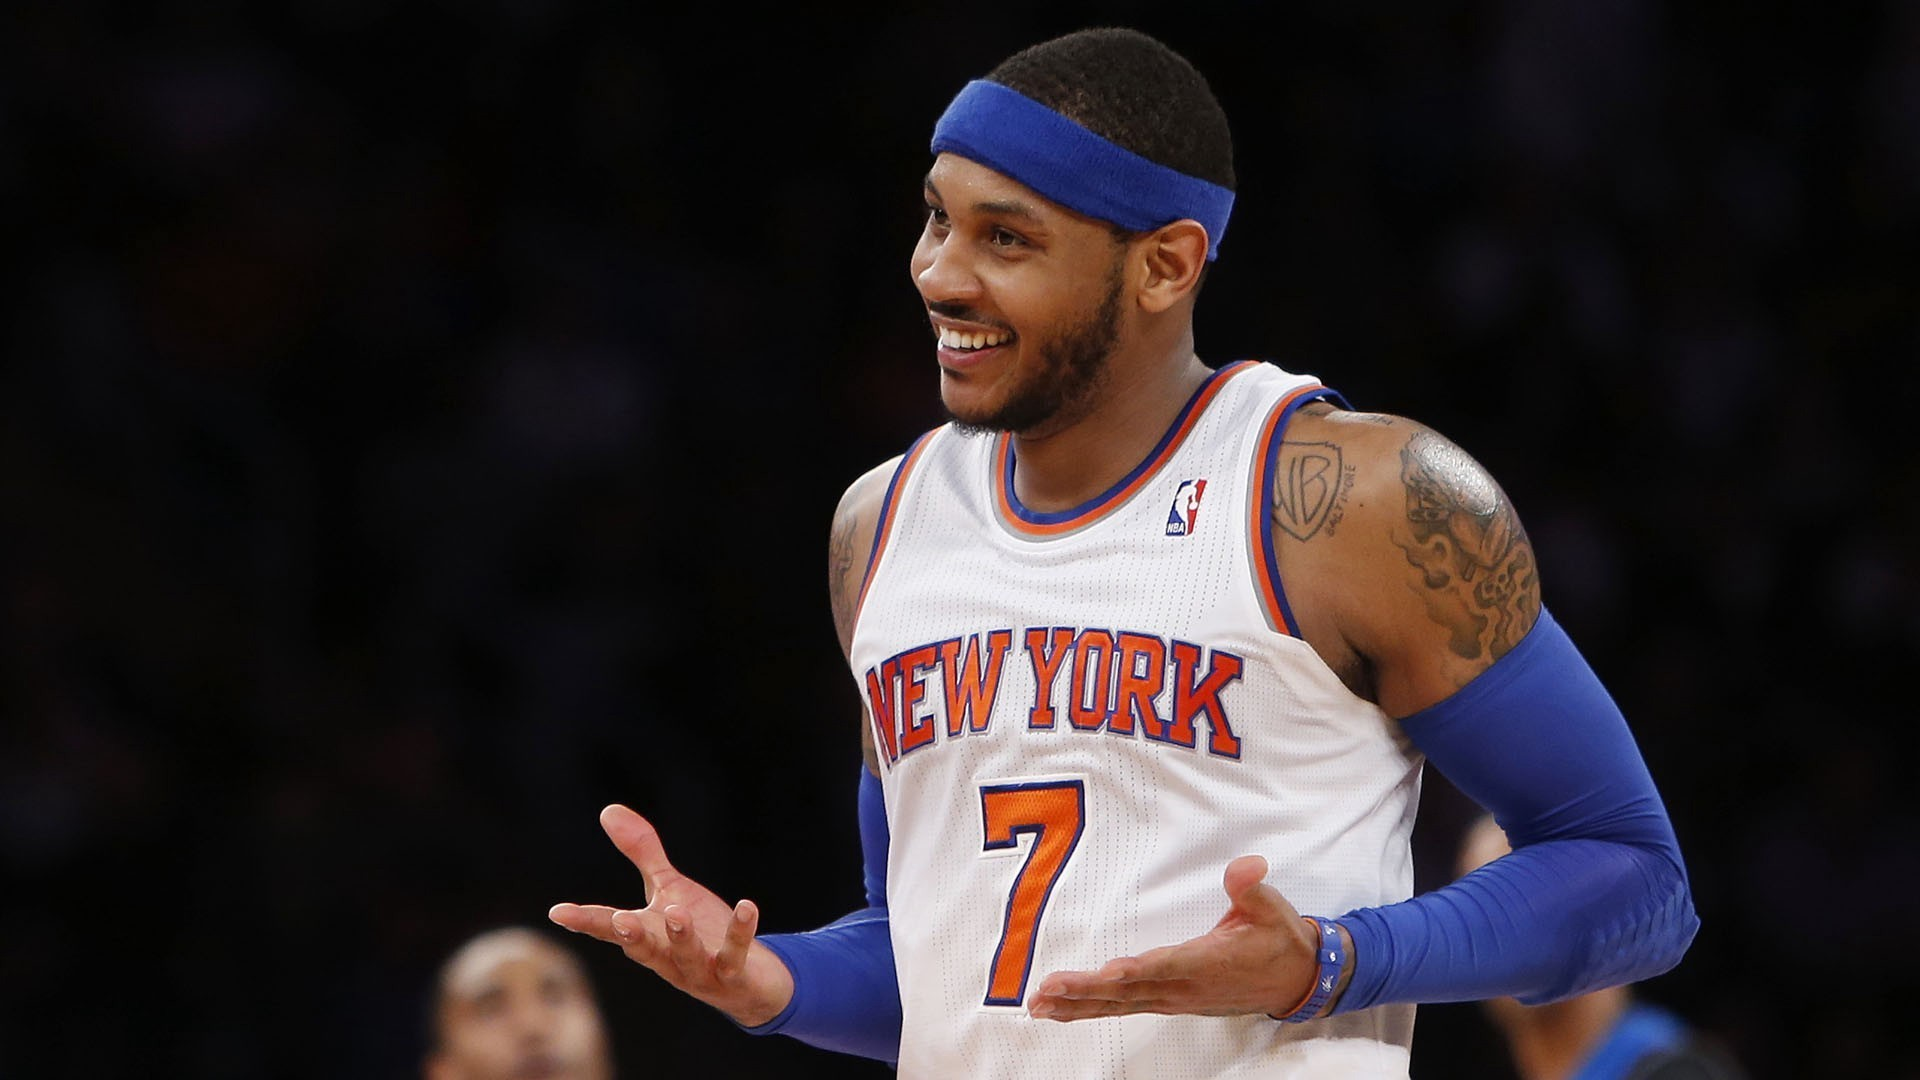 1920x1080 carmelo anthony wallpaper hd #307286